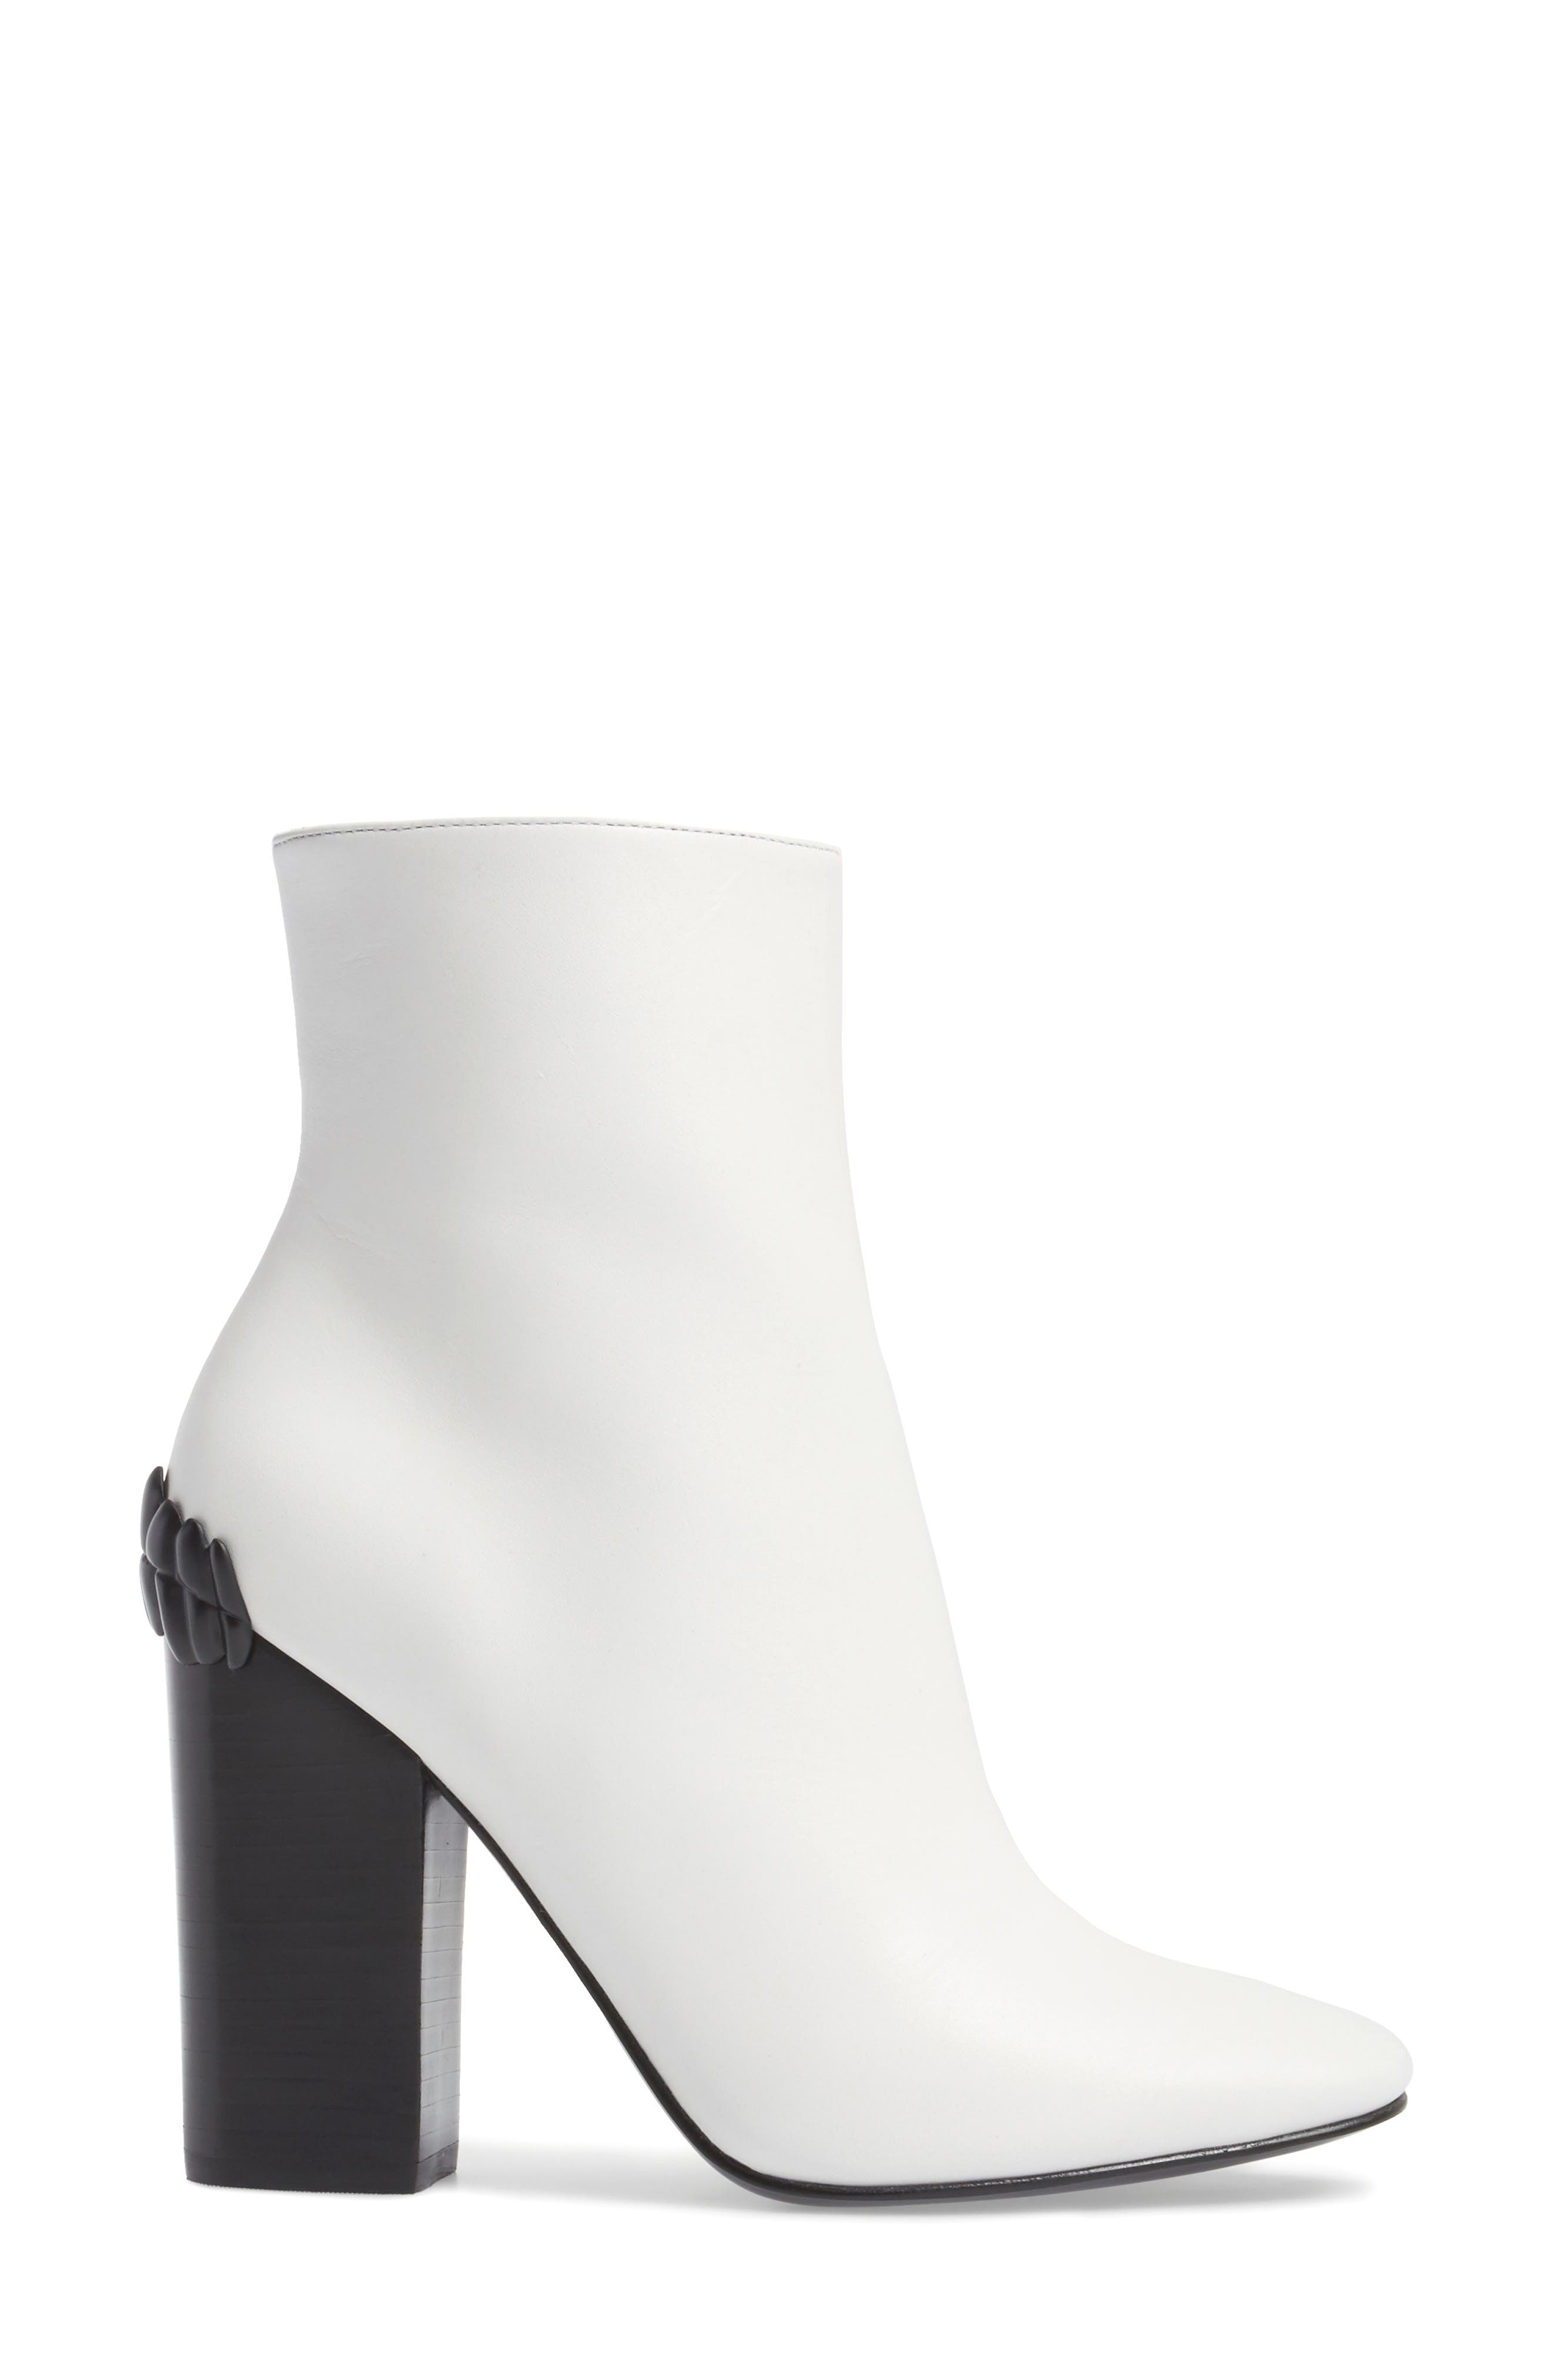 Haedyn Bootie,                             Alternate thumbnail 3, color,                             White Leather